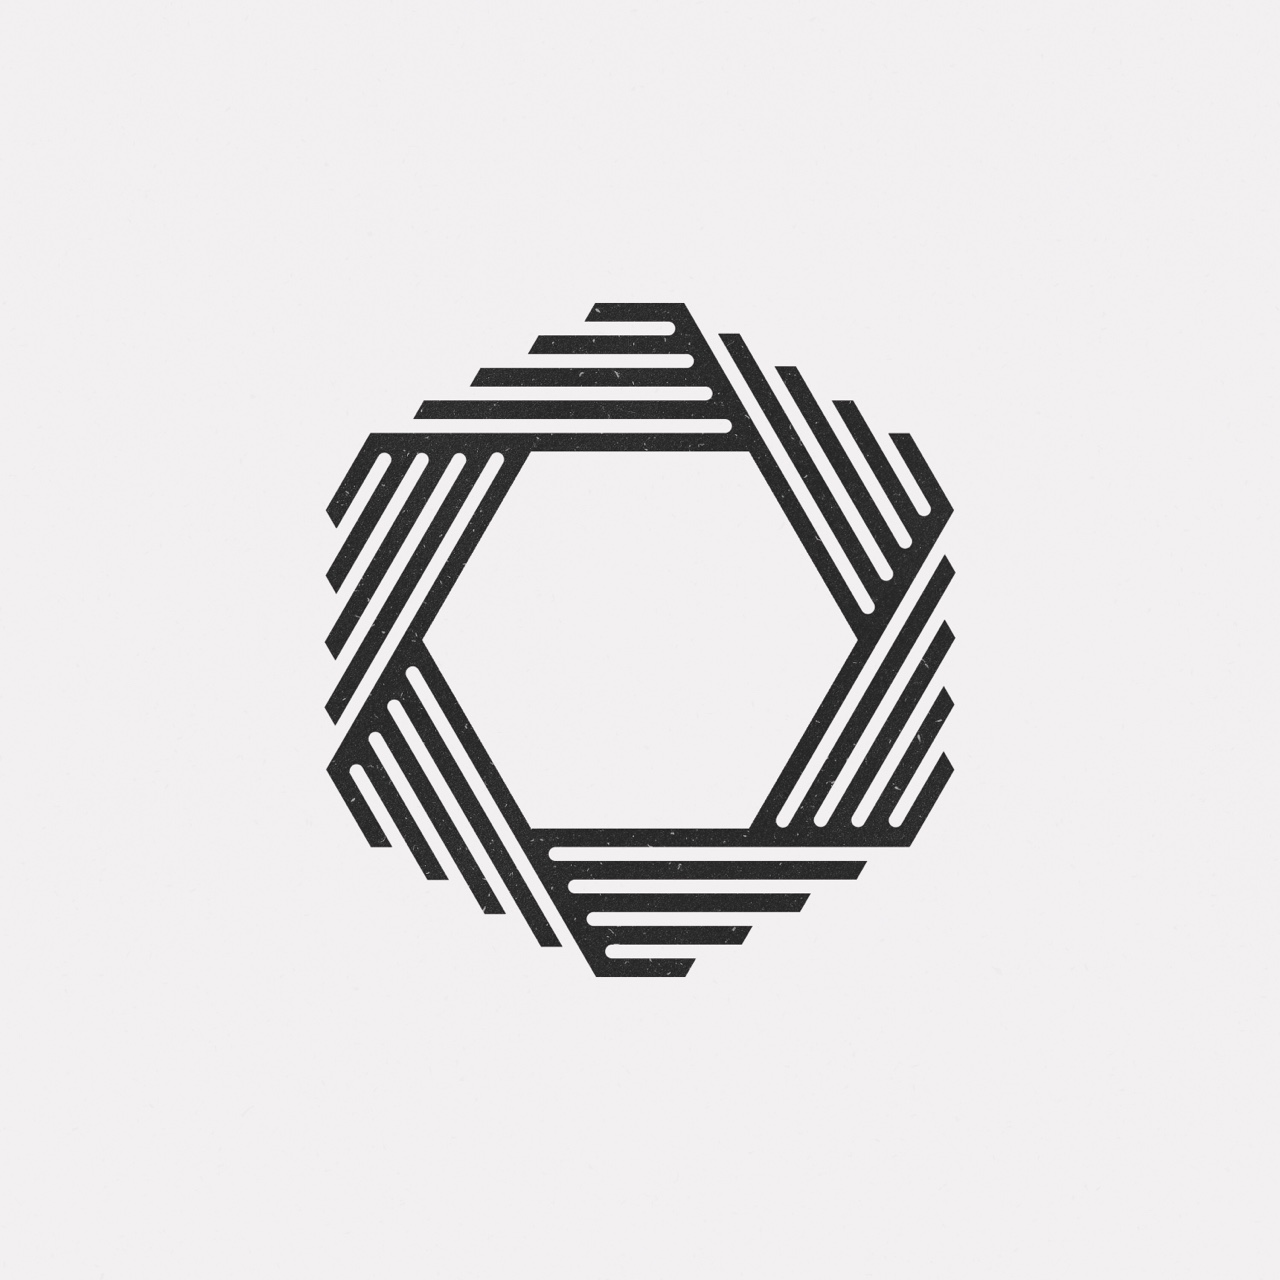 A new geometric design every day on inspirationde for Minimal design art